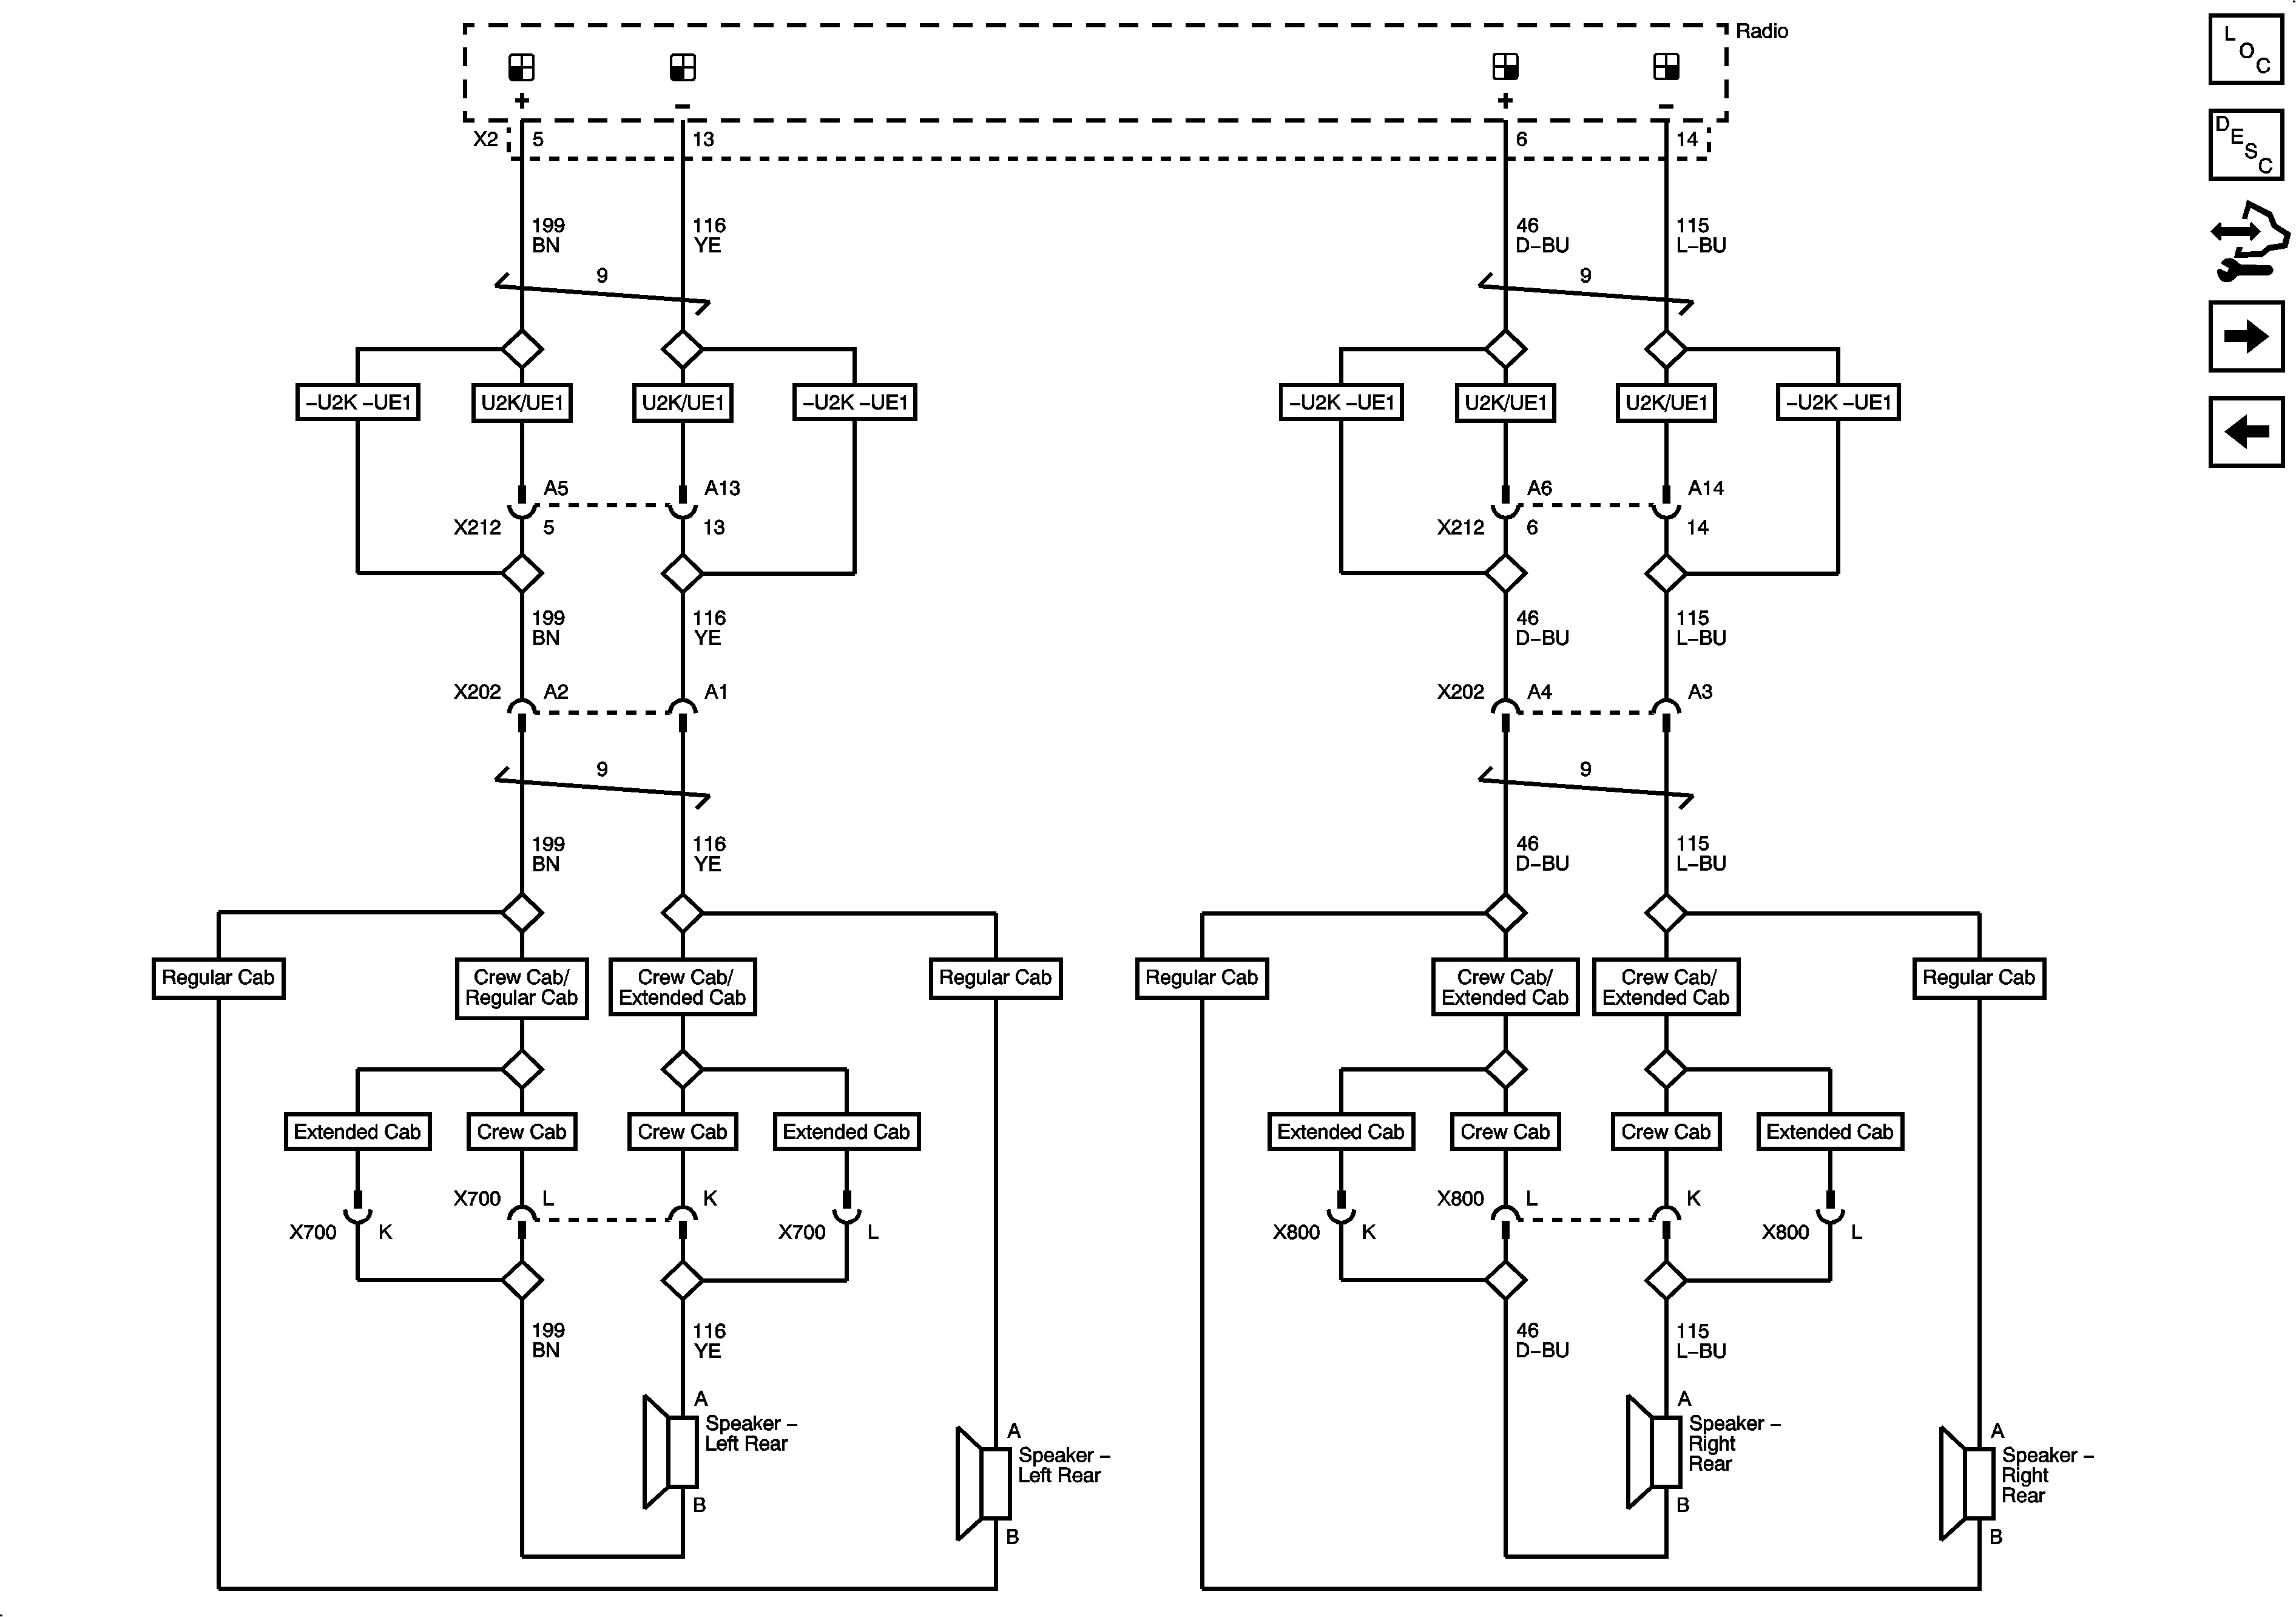 2009 Honda Civic Wiring Diagram On 1998 Freightliner Wiring Diagrams